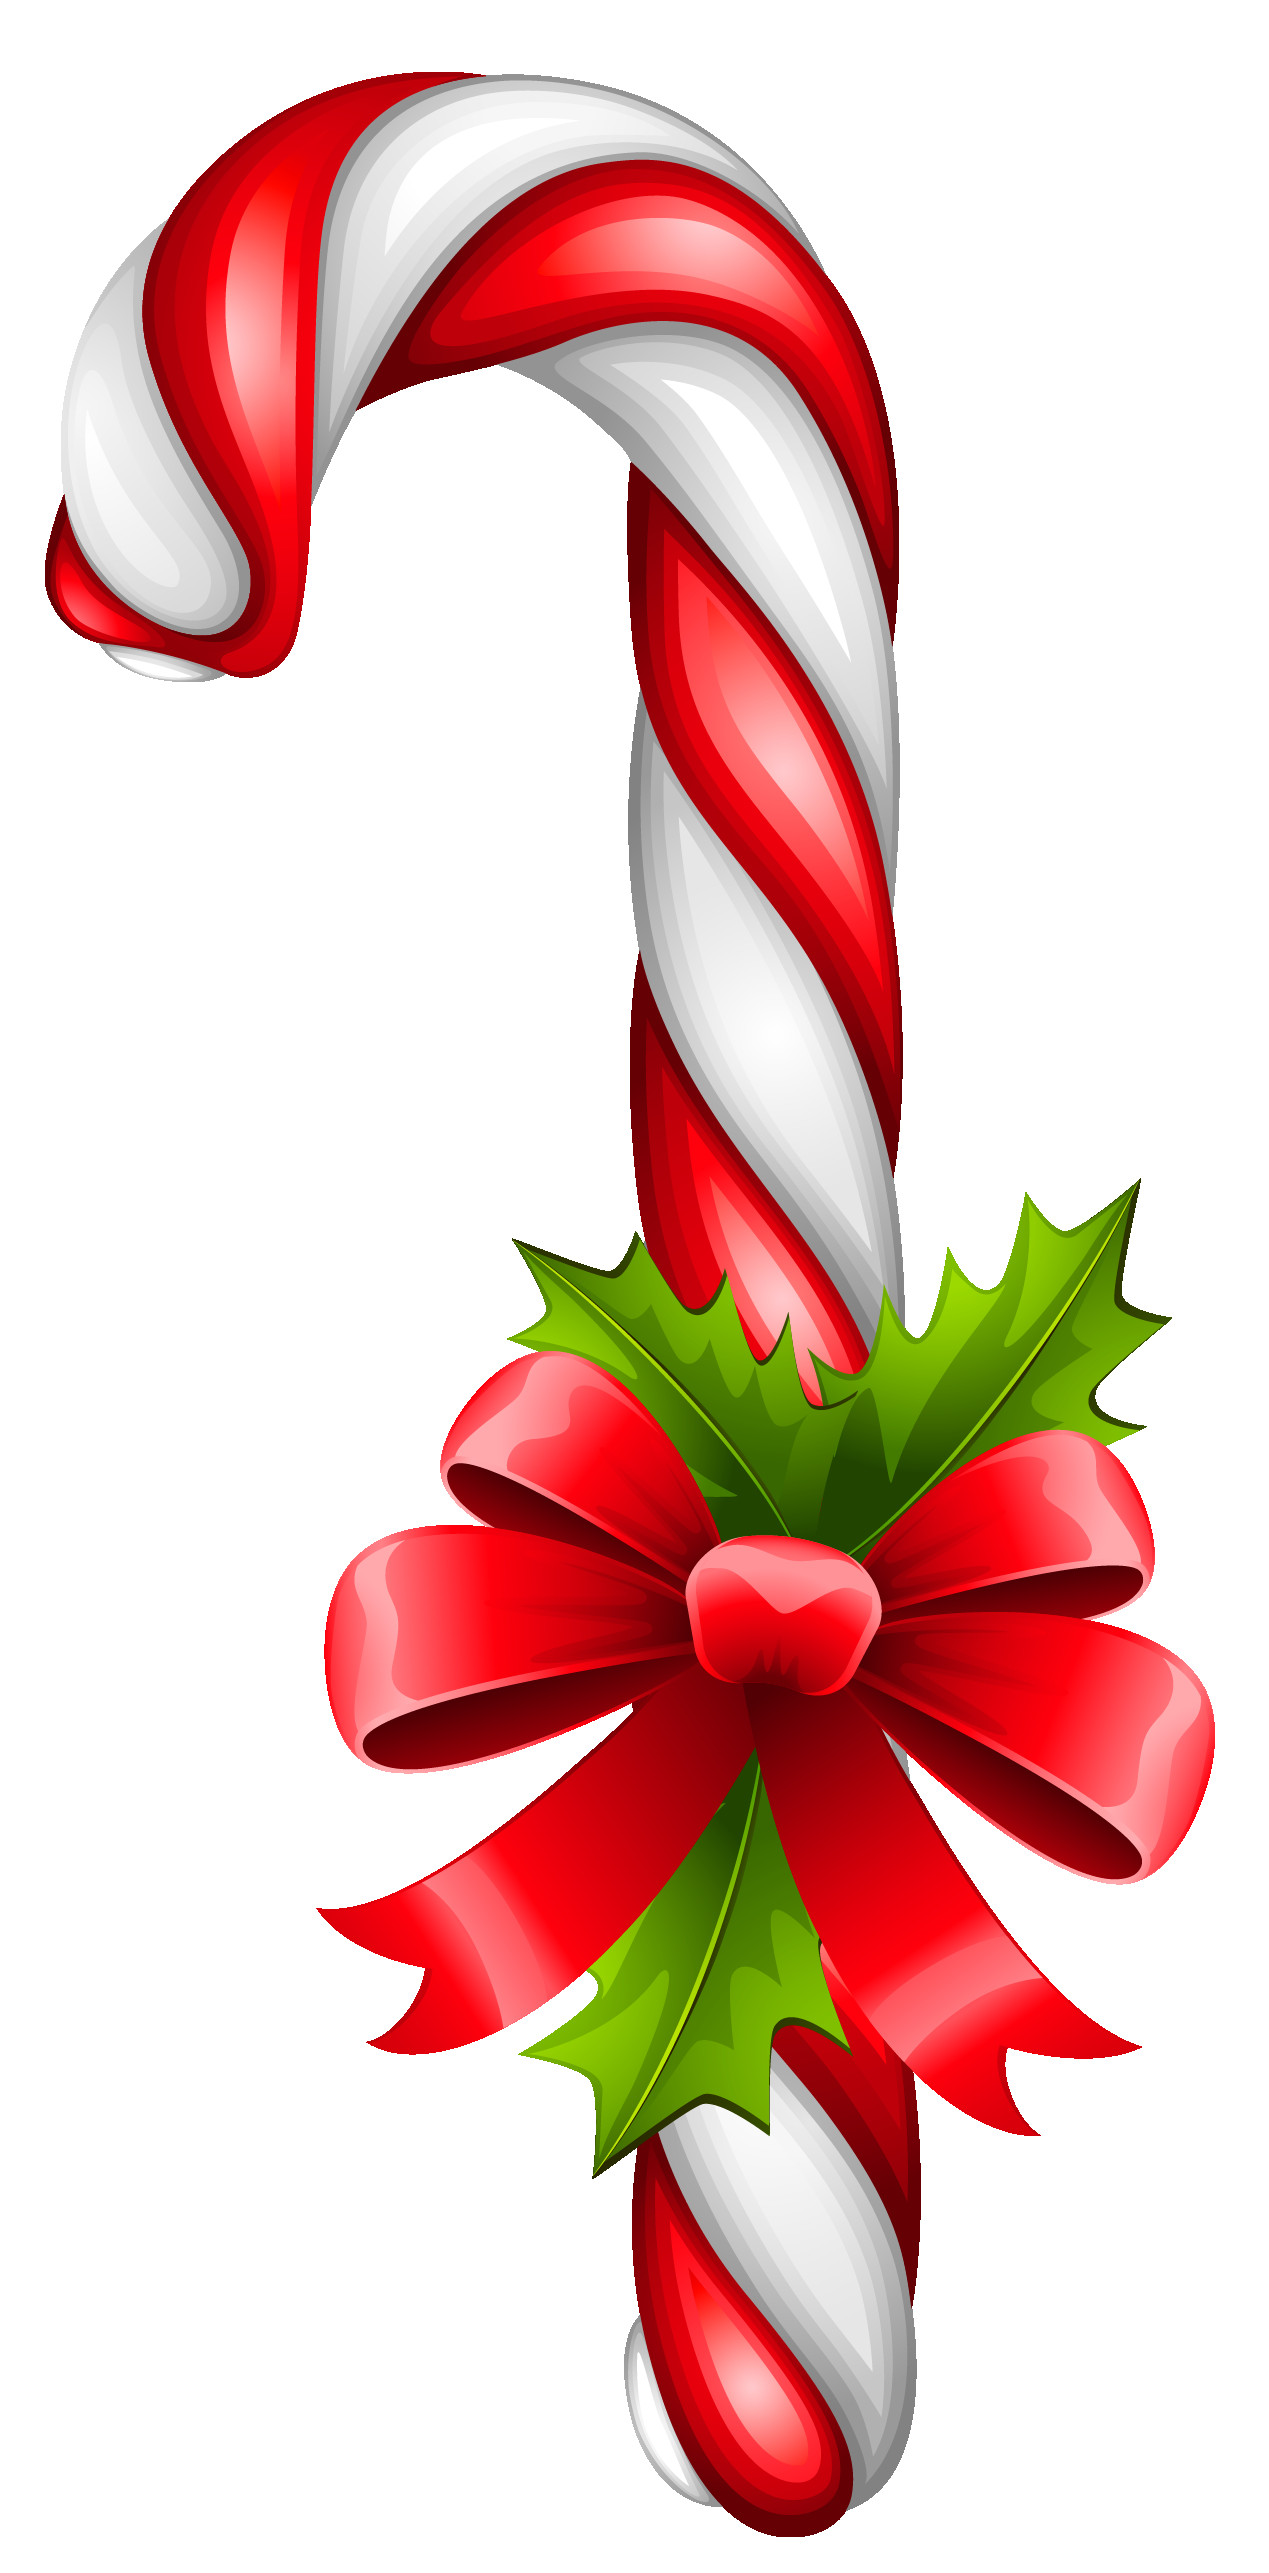 Christmas Candy Cane  Candy cane christmas clip art free clip art images free